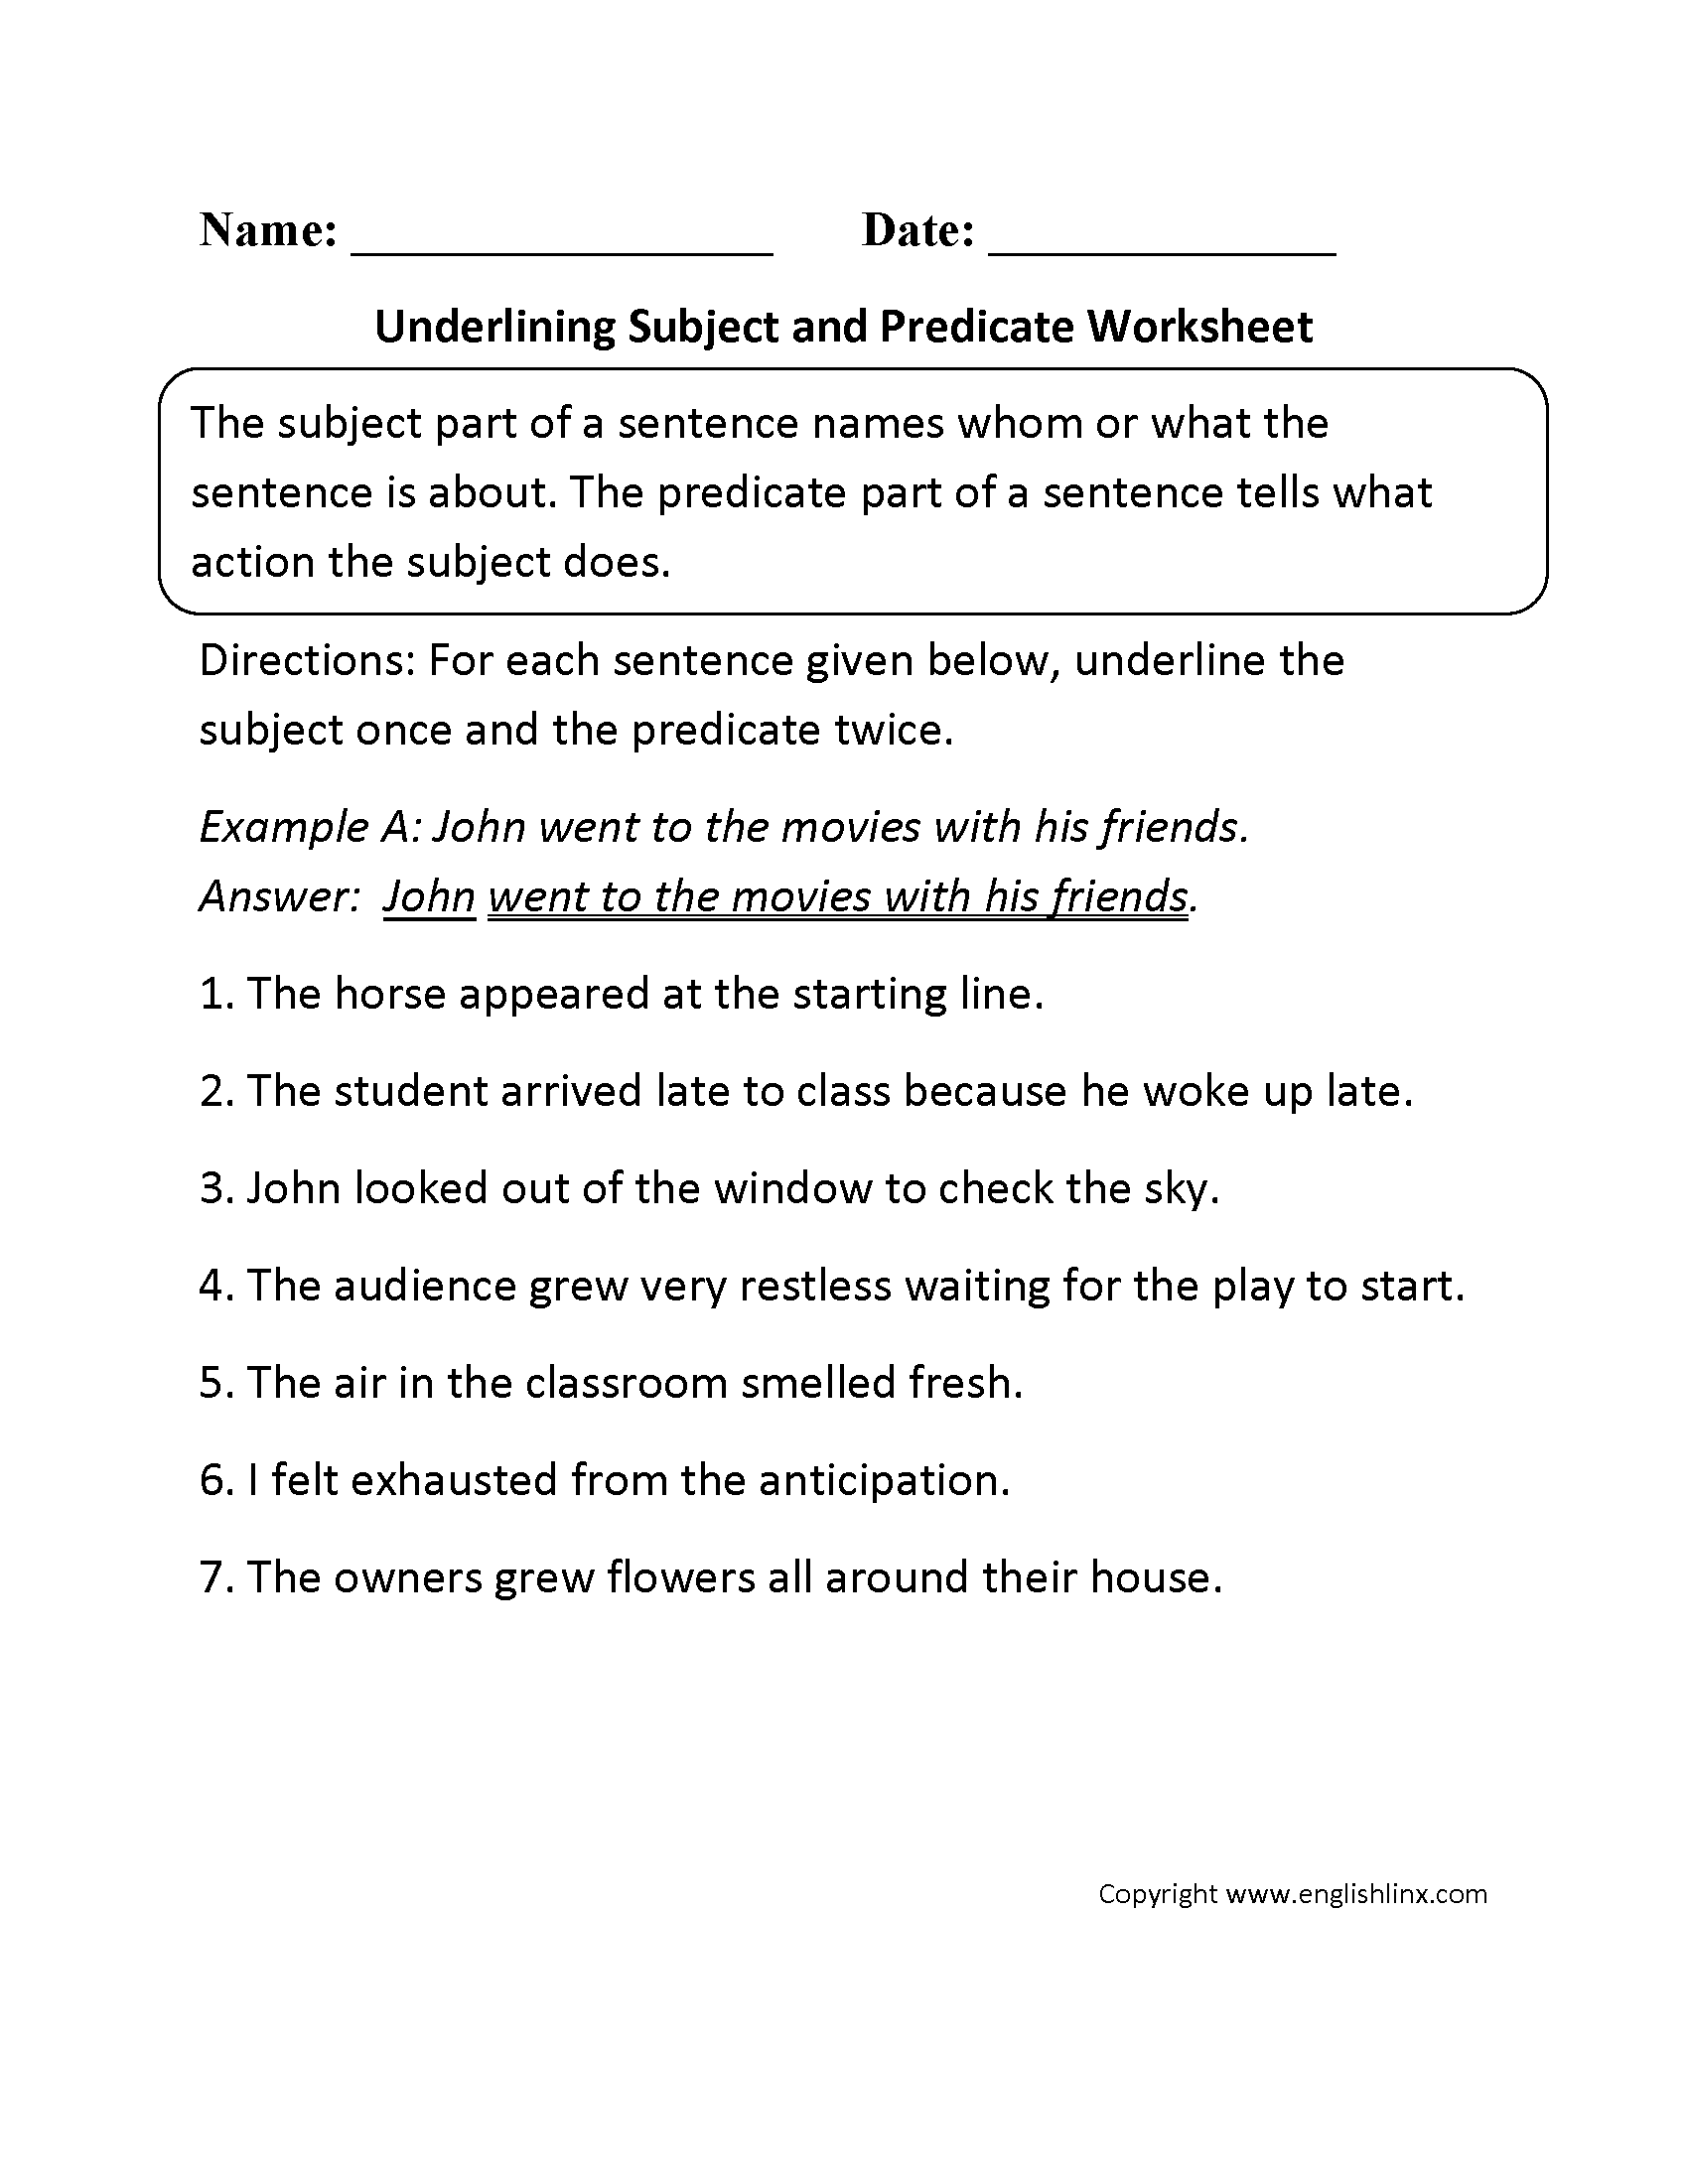 worksheet Subject Predicate Worksheets subject and predicate worksheets underlining or worksheet